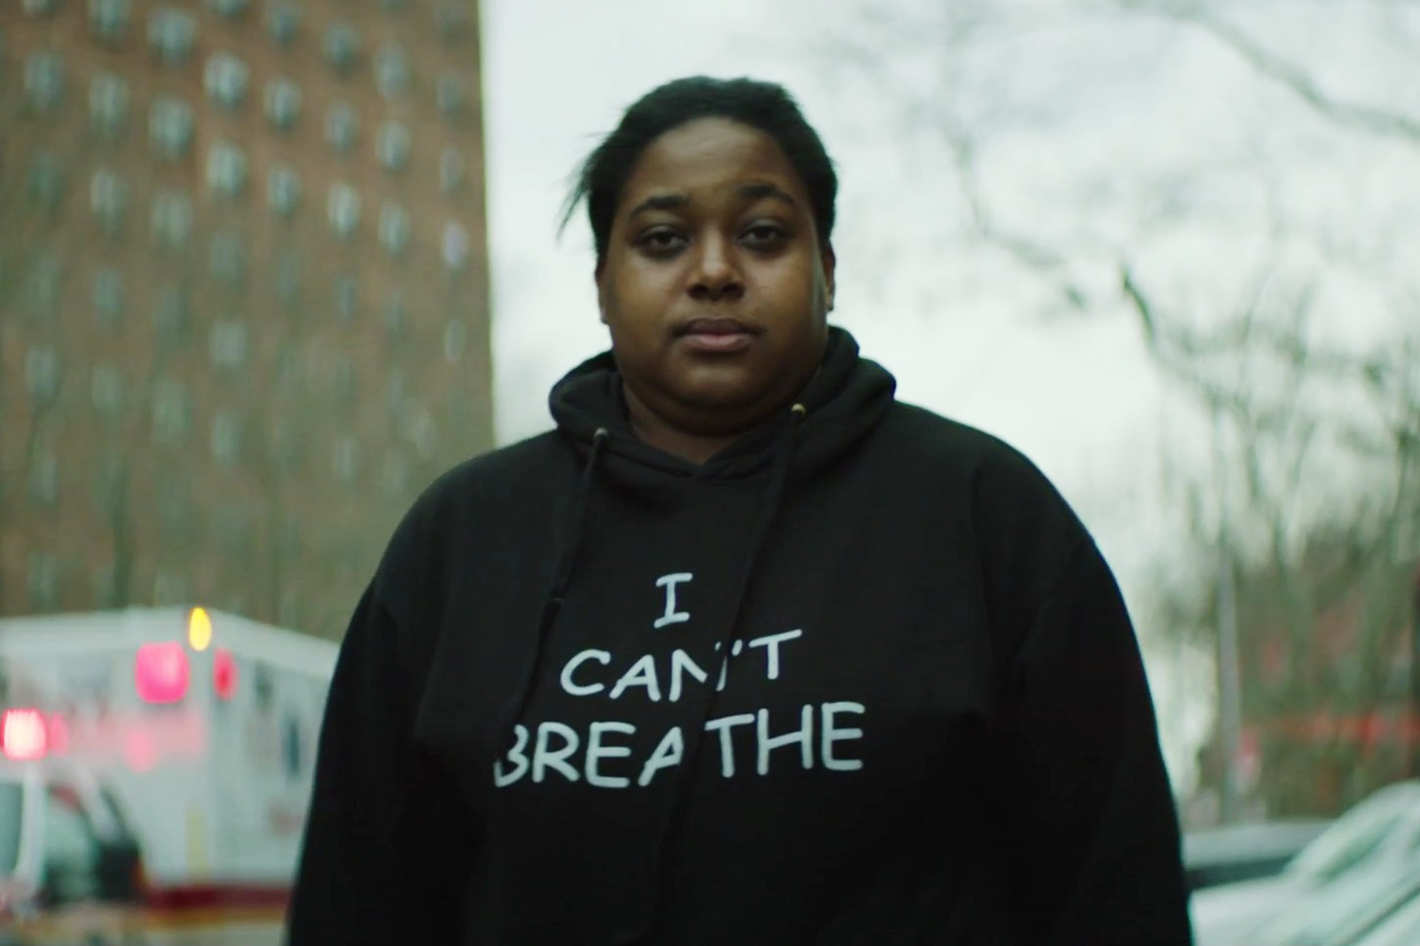 Erica Garner was a revolutionary. Don't let neoliberal Democrats whitewash and exploit her